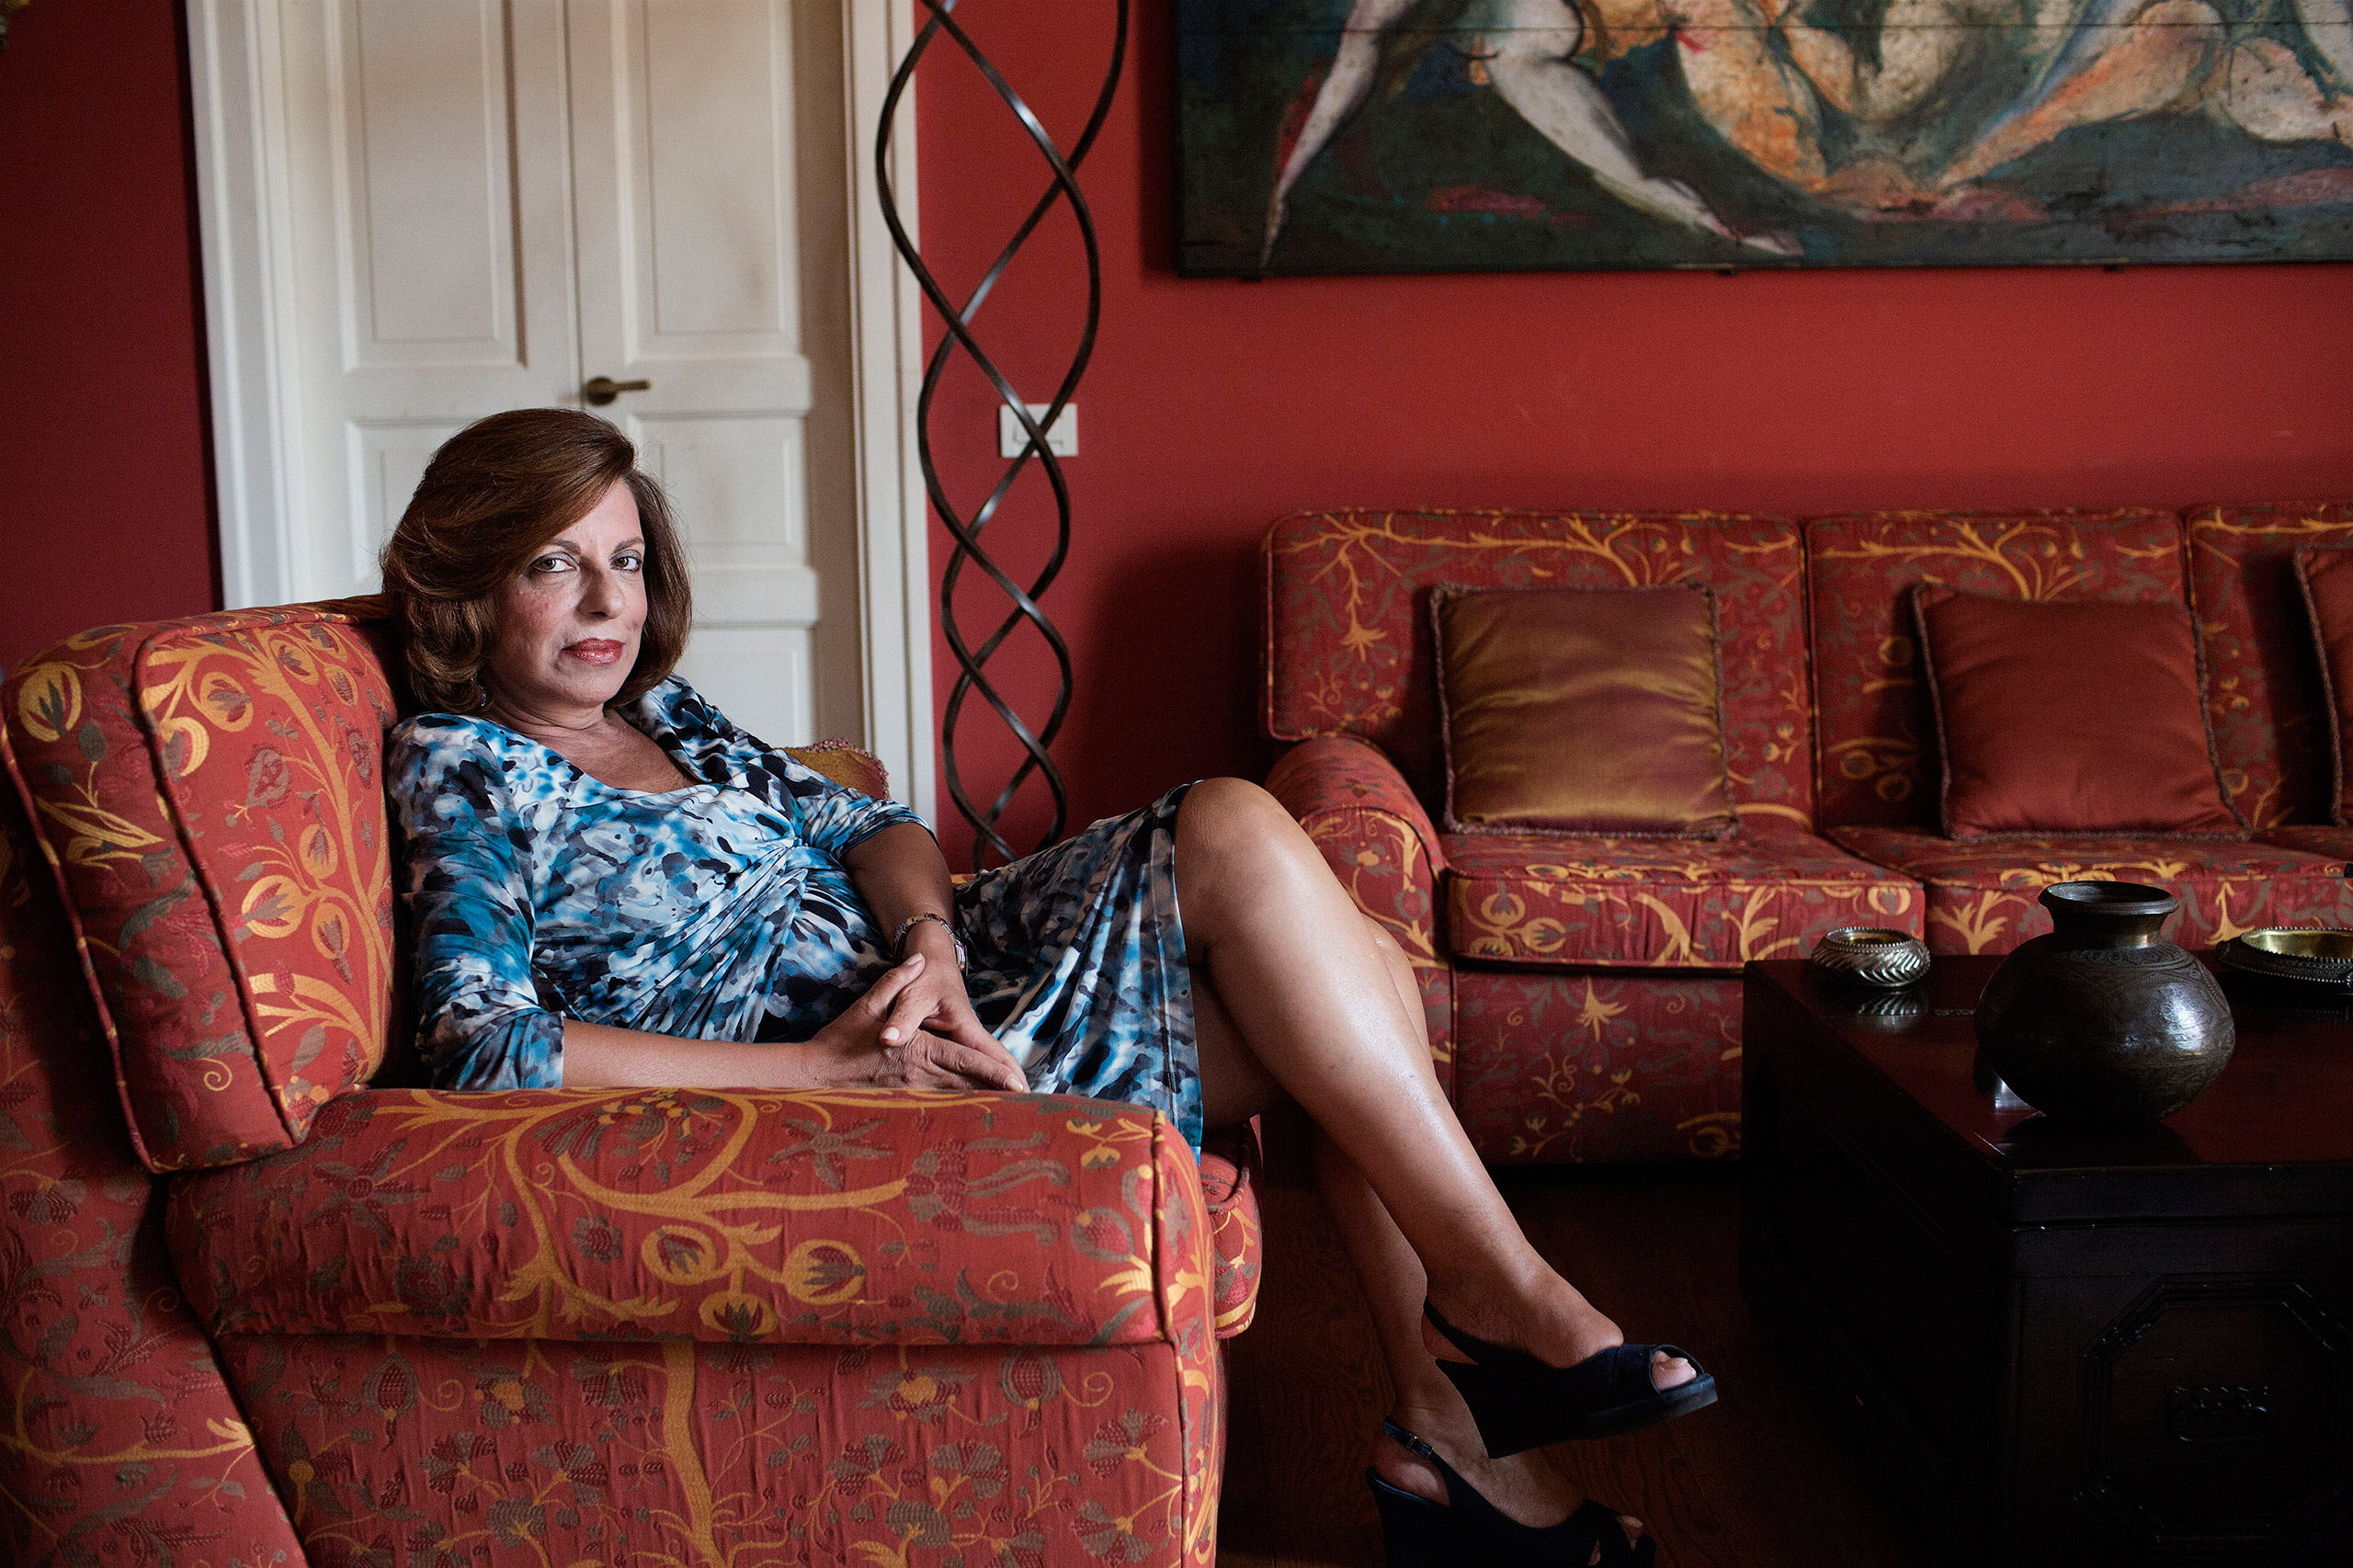 Teresa Maria Principato, known as the  iron prosecutor,  sits on the sofa in her living room in Palermo, Italy, July 14, 2014.